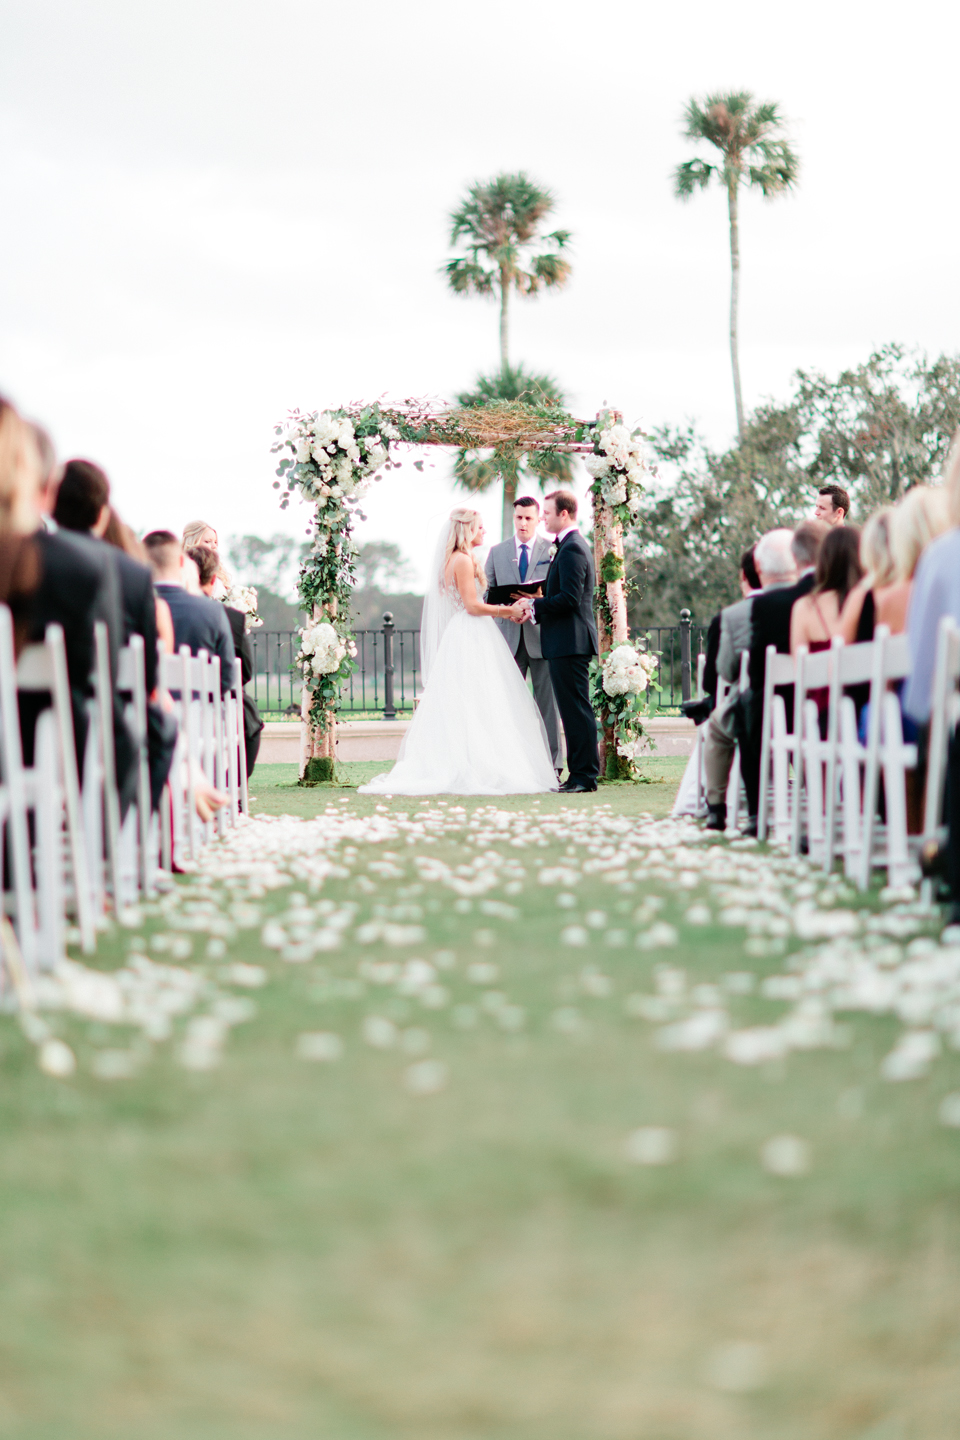 Picture of a bride and groom saying vows on a wedding day at TPC Sawgrass in Ponte Vedra, Florida